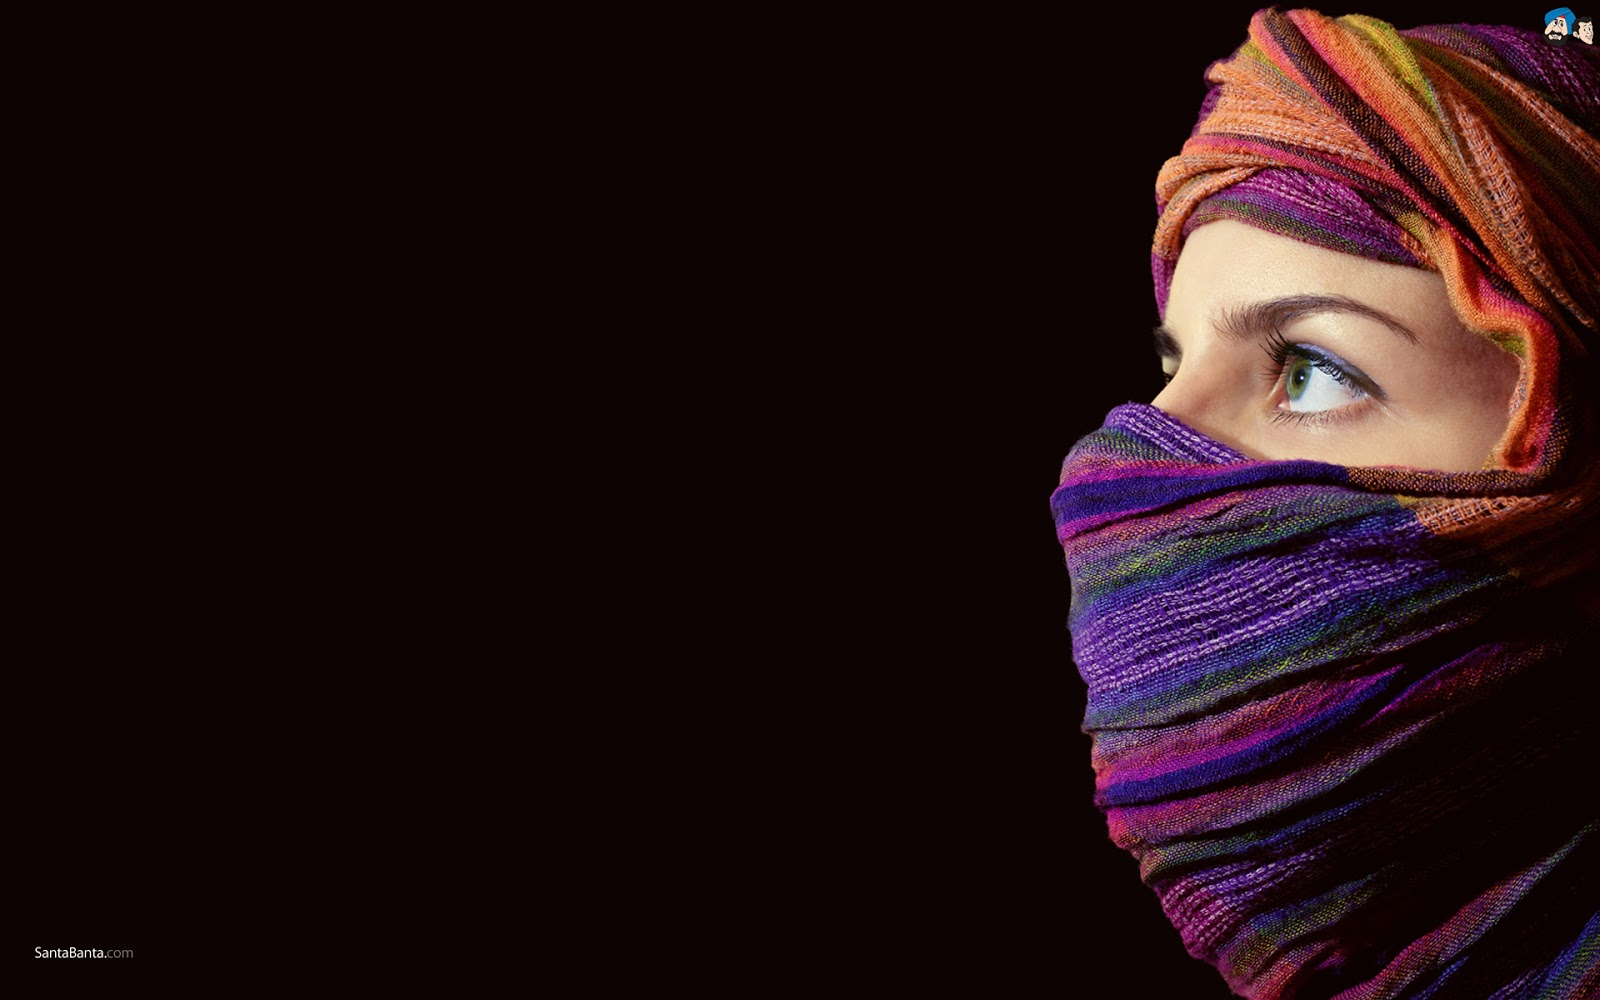 wallpaper hijab wallpapers south - photo #21